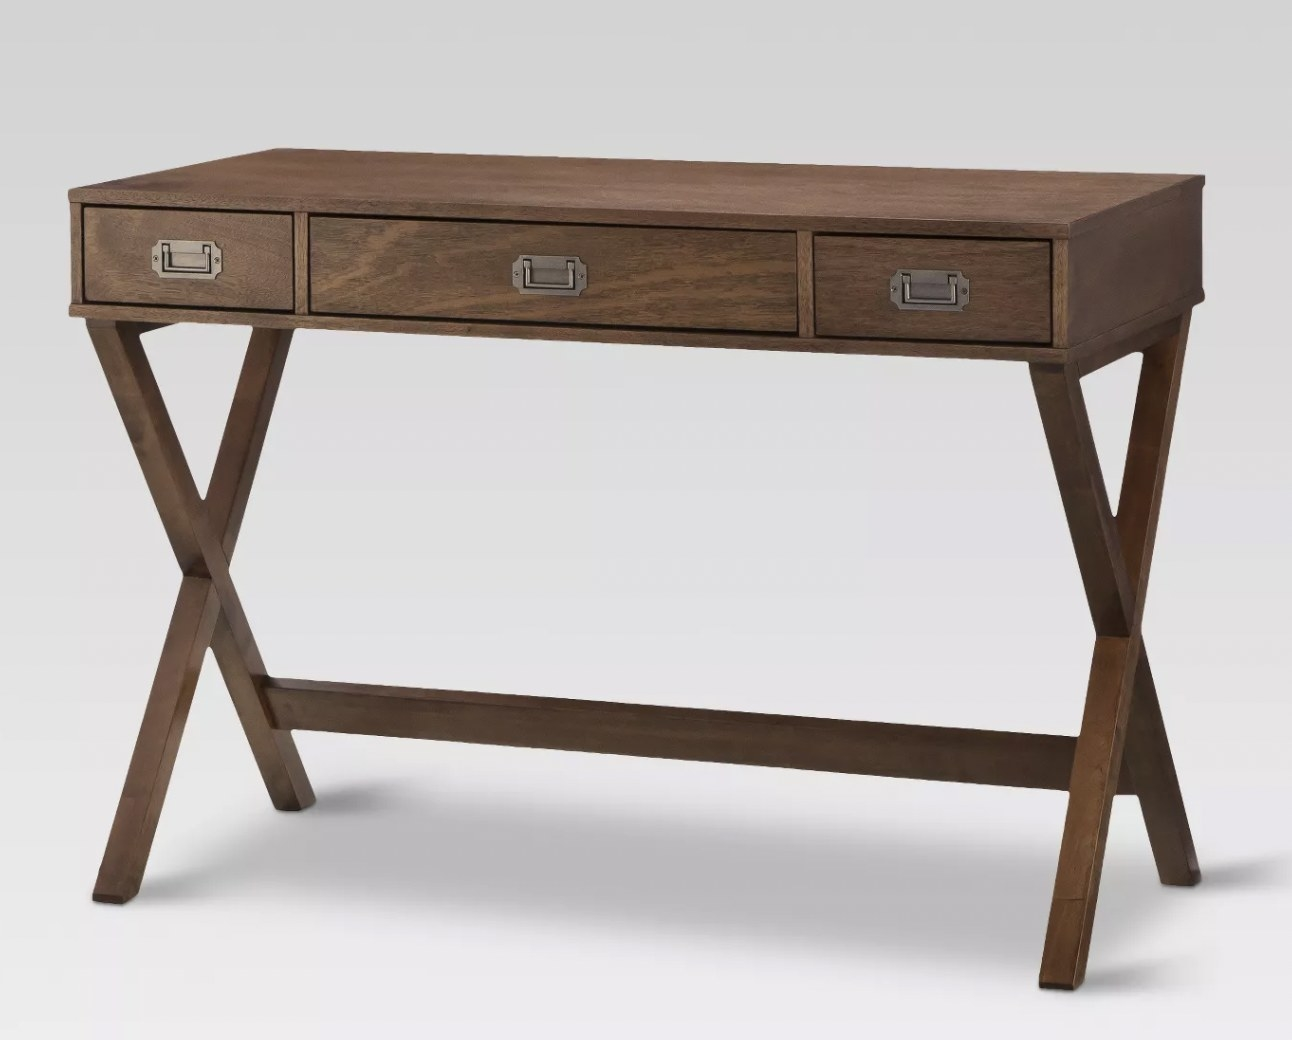 a brown wooden writing desk with three drawers